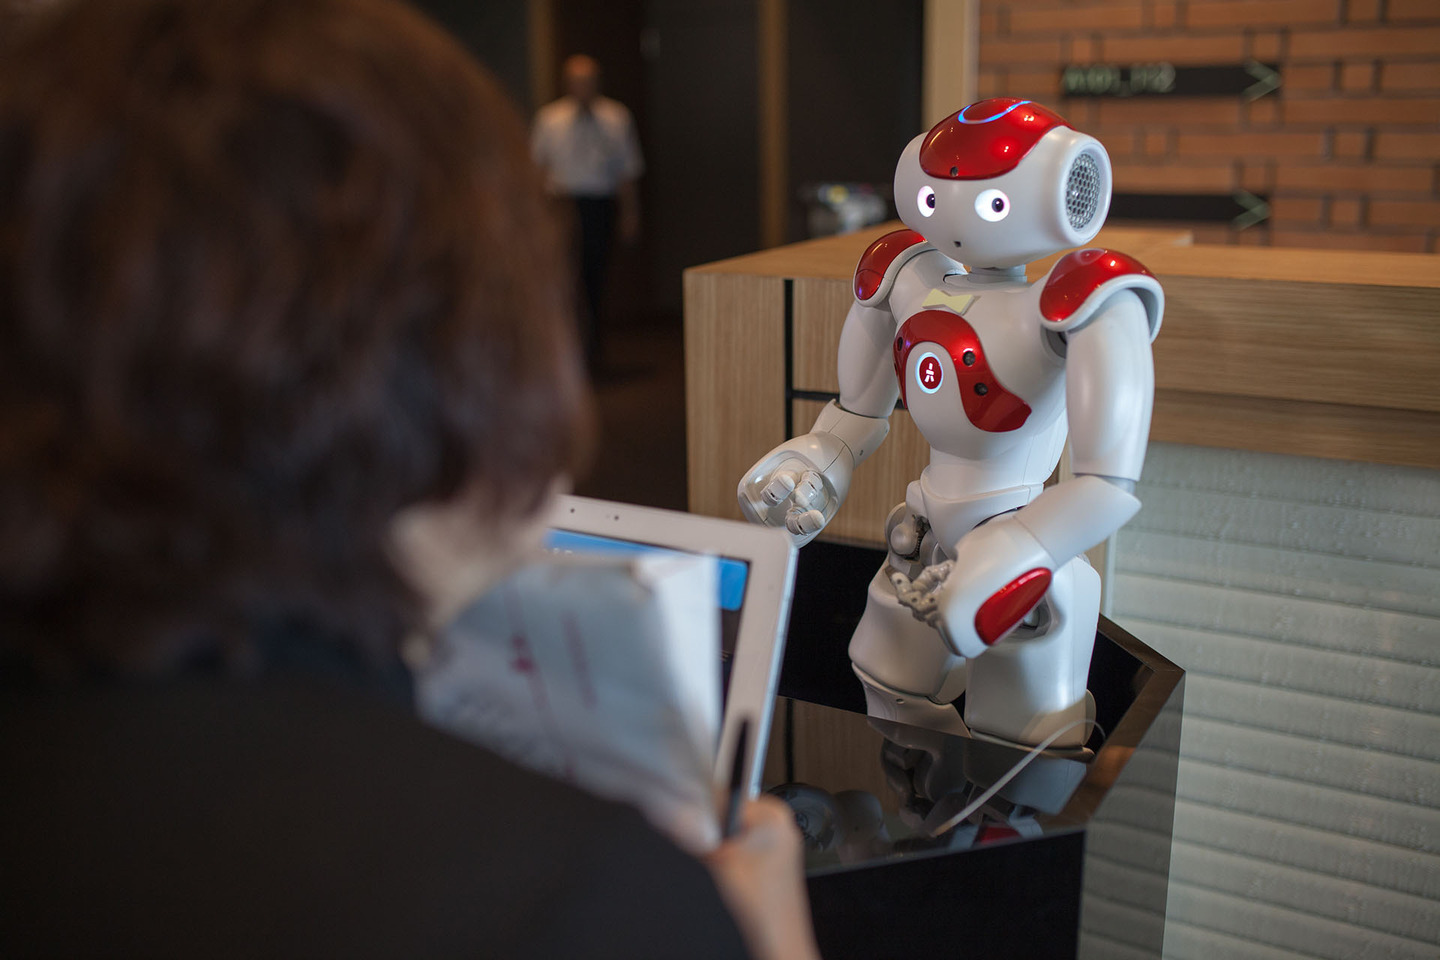 SASEBO, JAPAN - JULY 15: A robotic concierge handles guests questions at the Henna Hotel (Weird Hotel) in Huis Ten Bosch, Netherlands themed amusement park on July 15, 2015 in Sasebo, Japan. The Henna Hotel, scheduled to open on July 17, features multi-lingual humanoid robots that greet visitors while other robots serve coffee and do the cleaning, as well as room doors that are opened by face-recognition technology. (Photo by Trevor Williams/WireImage)